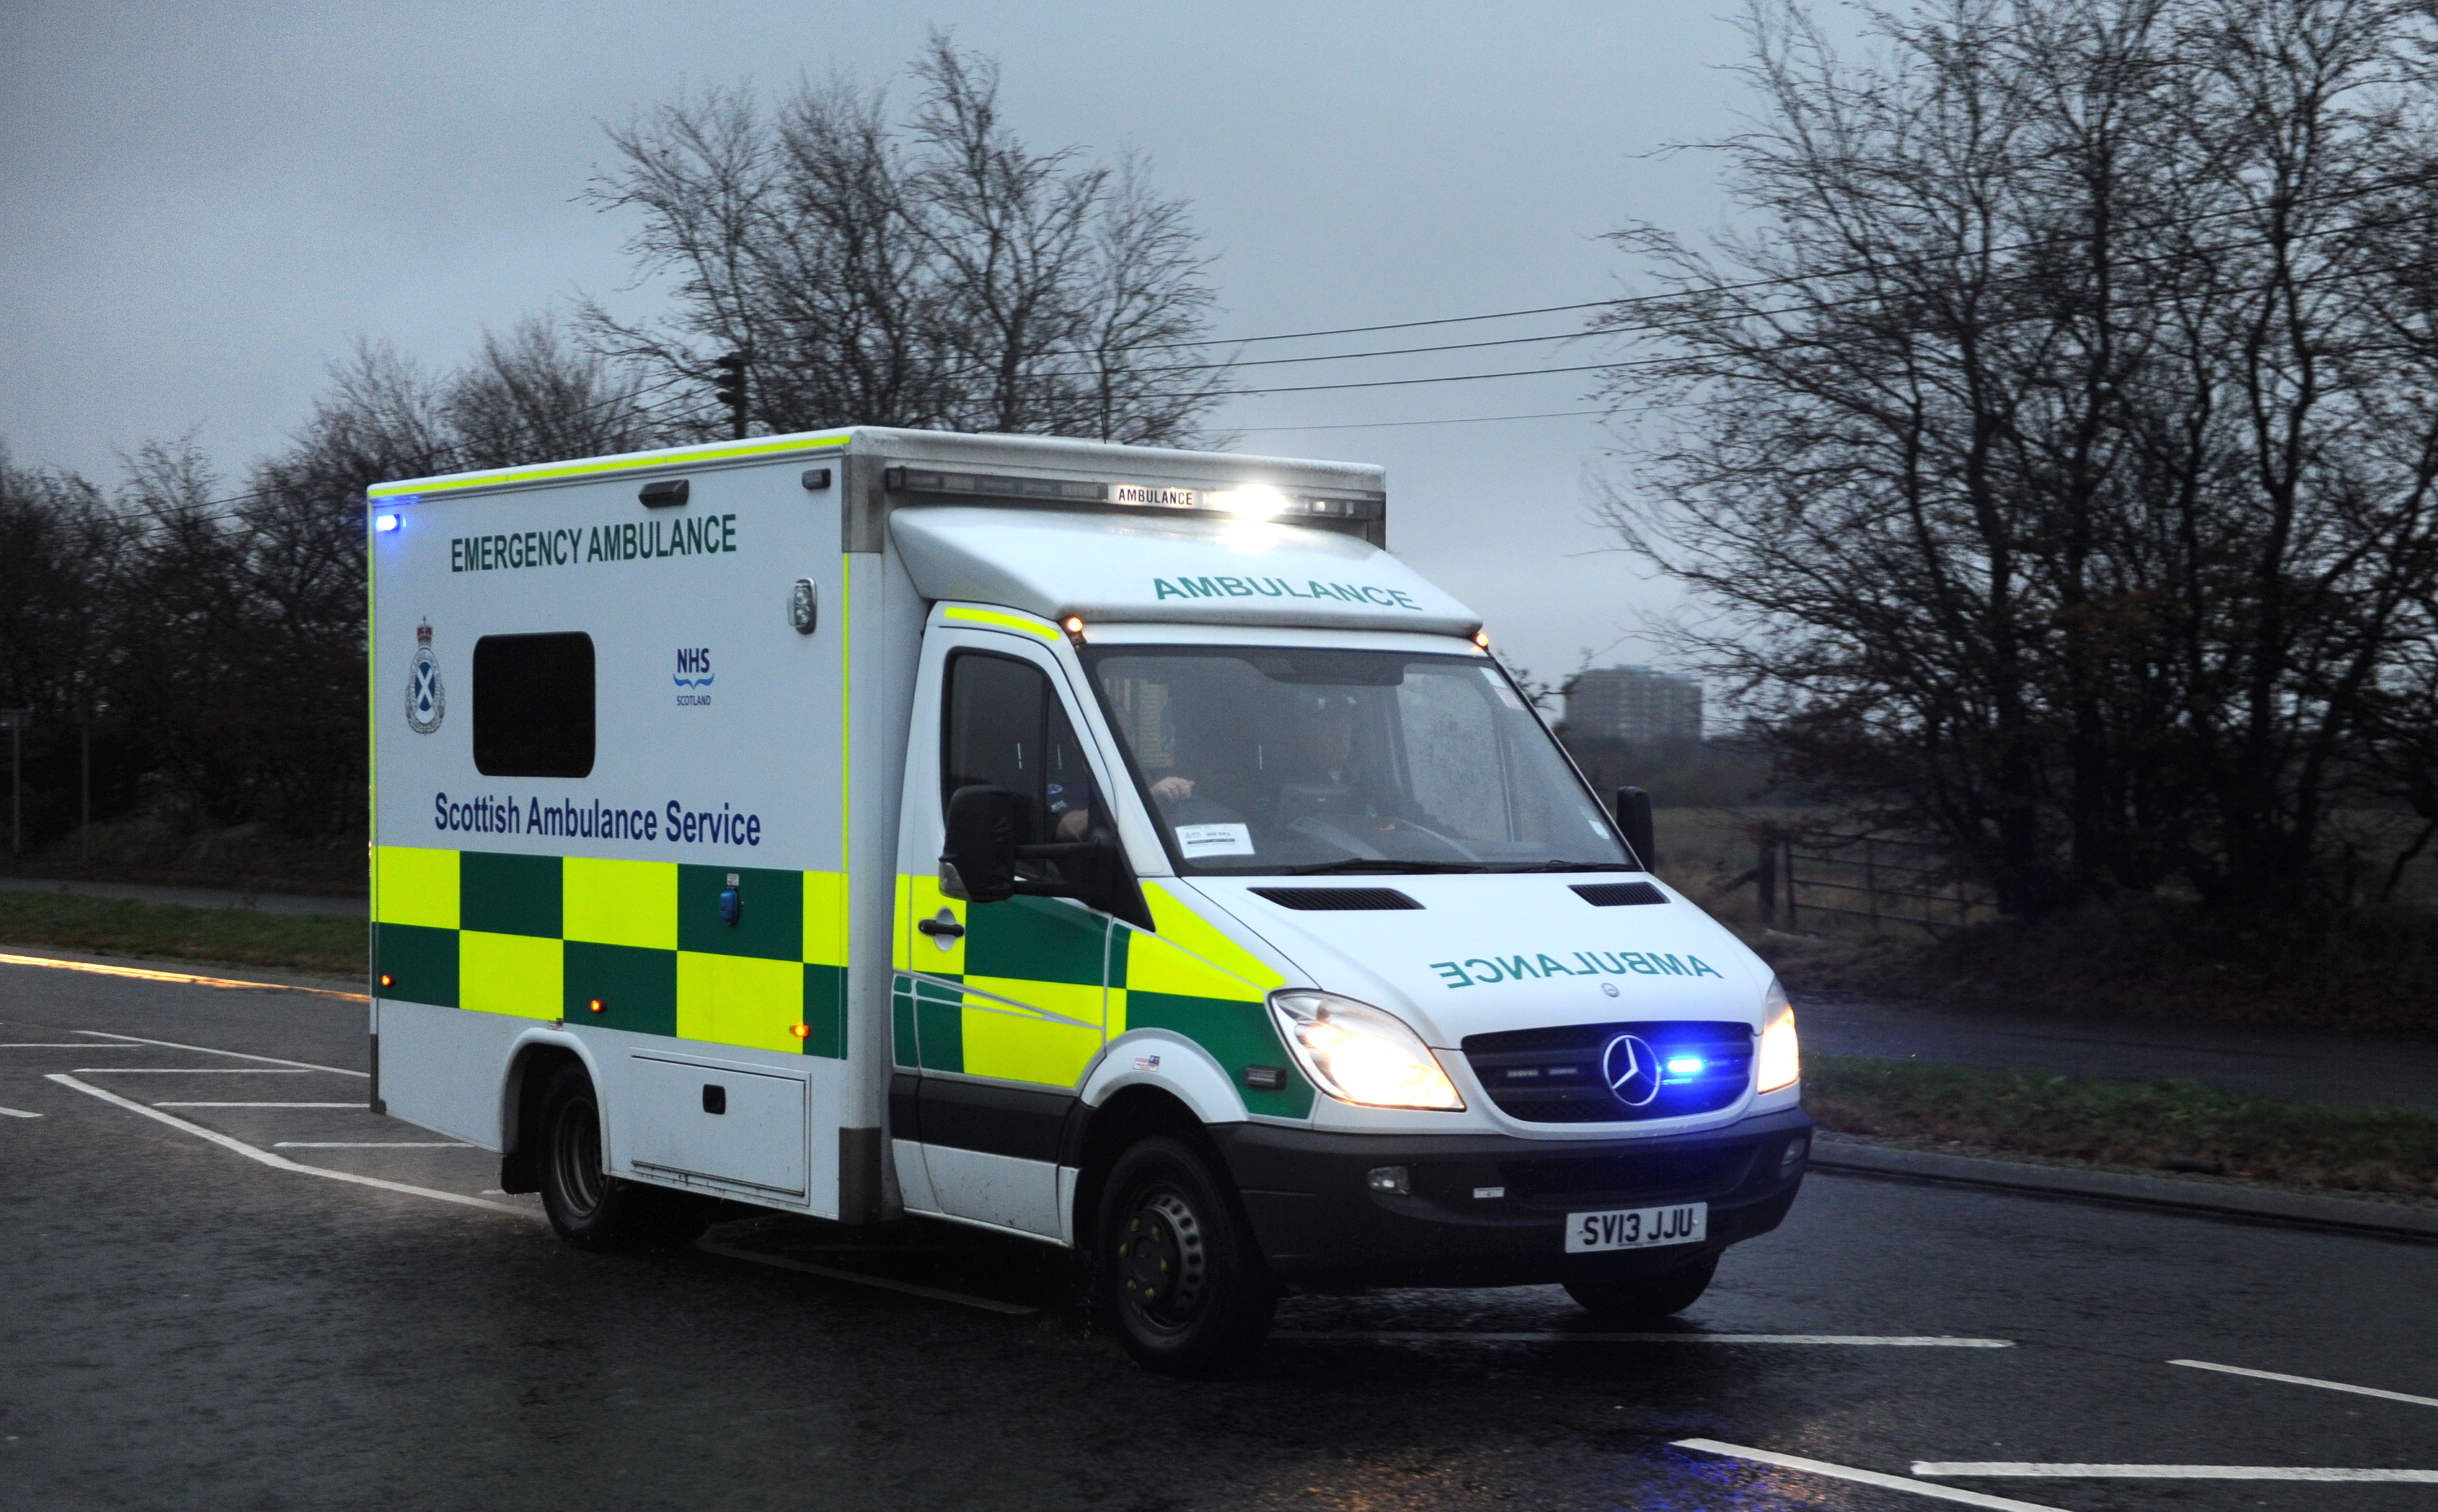 The Scottish Ambulance Service had received 43 hoax calls this year up to the end of September.